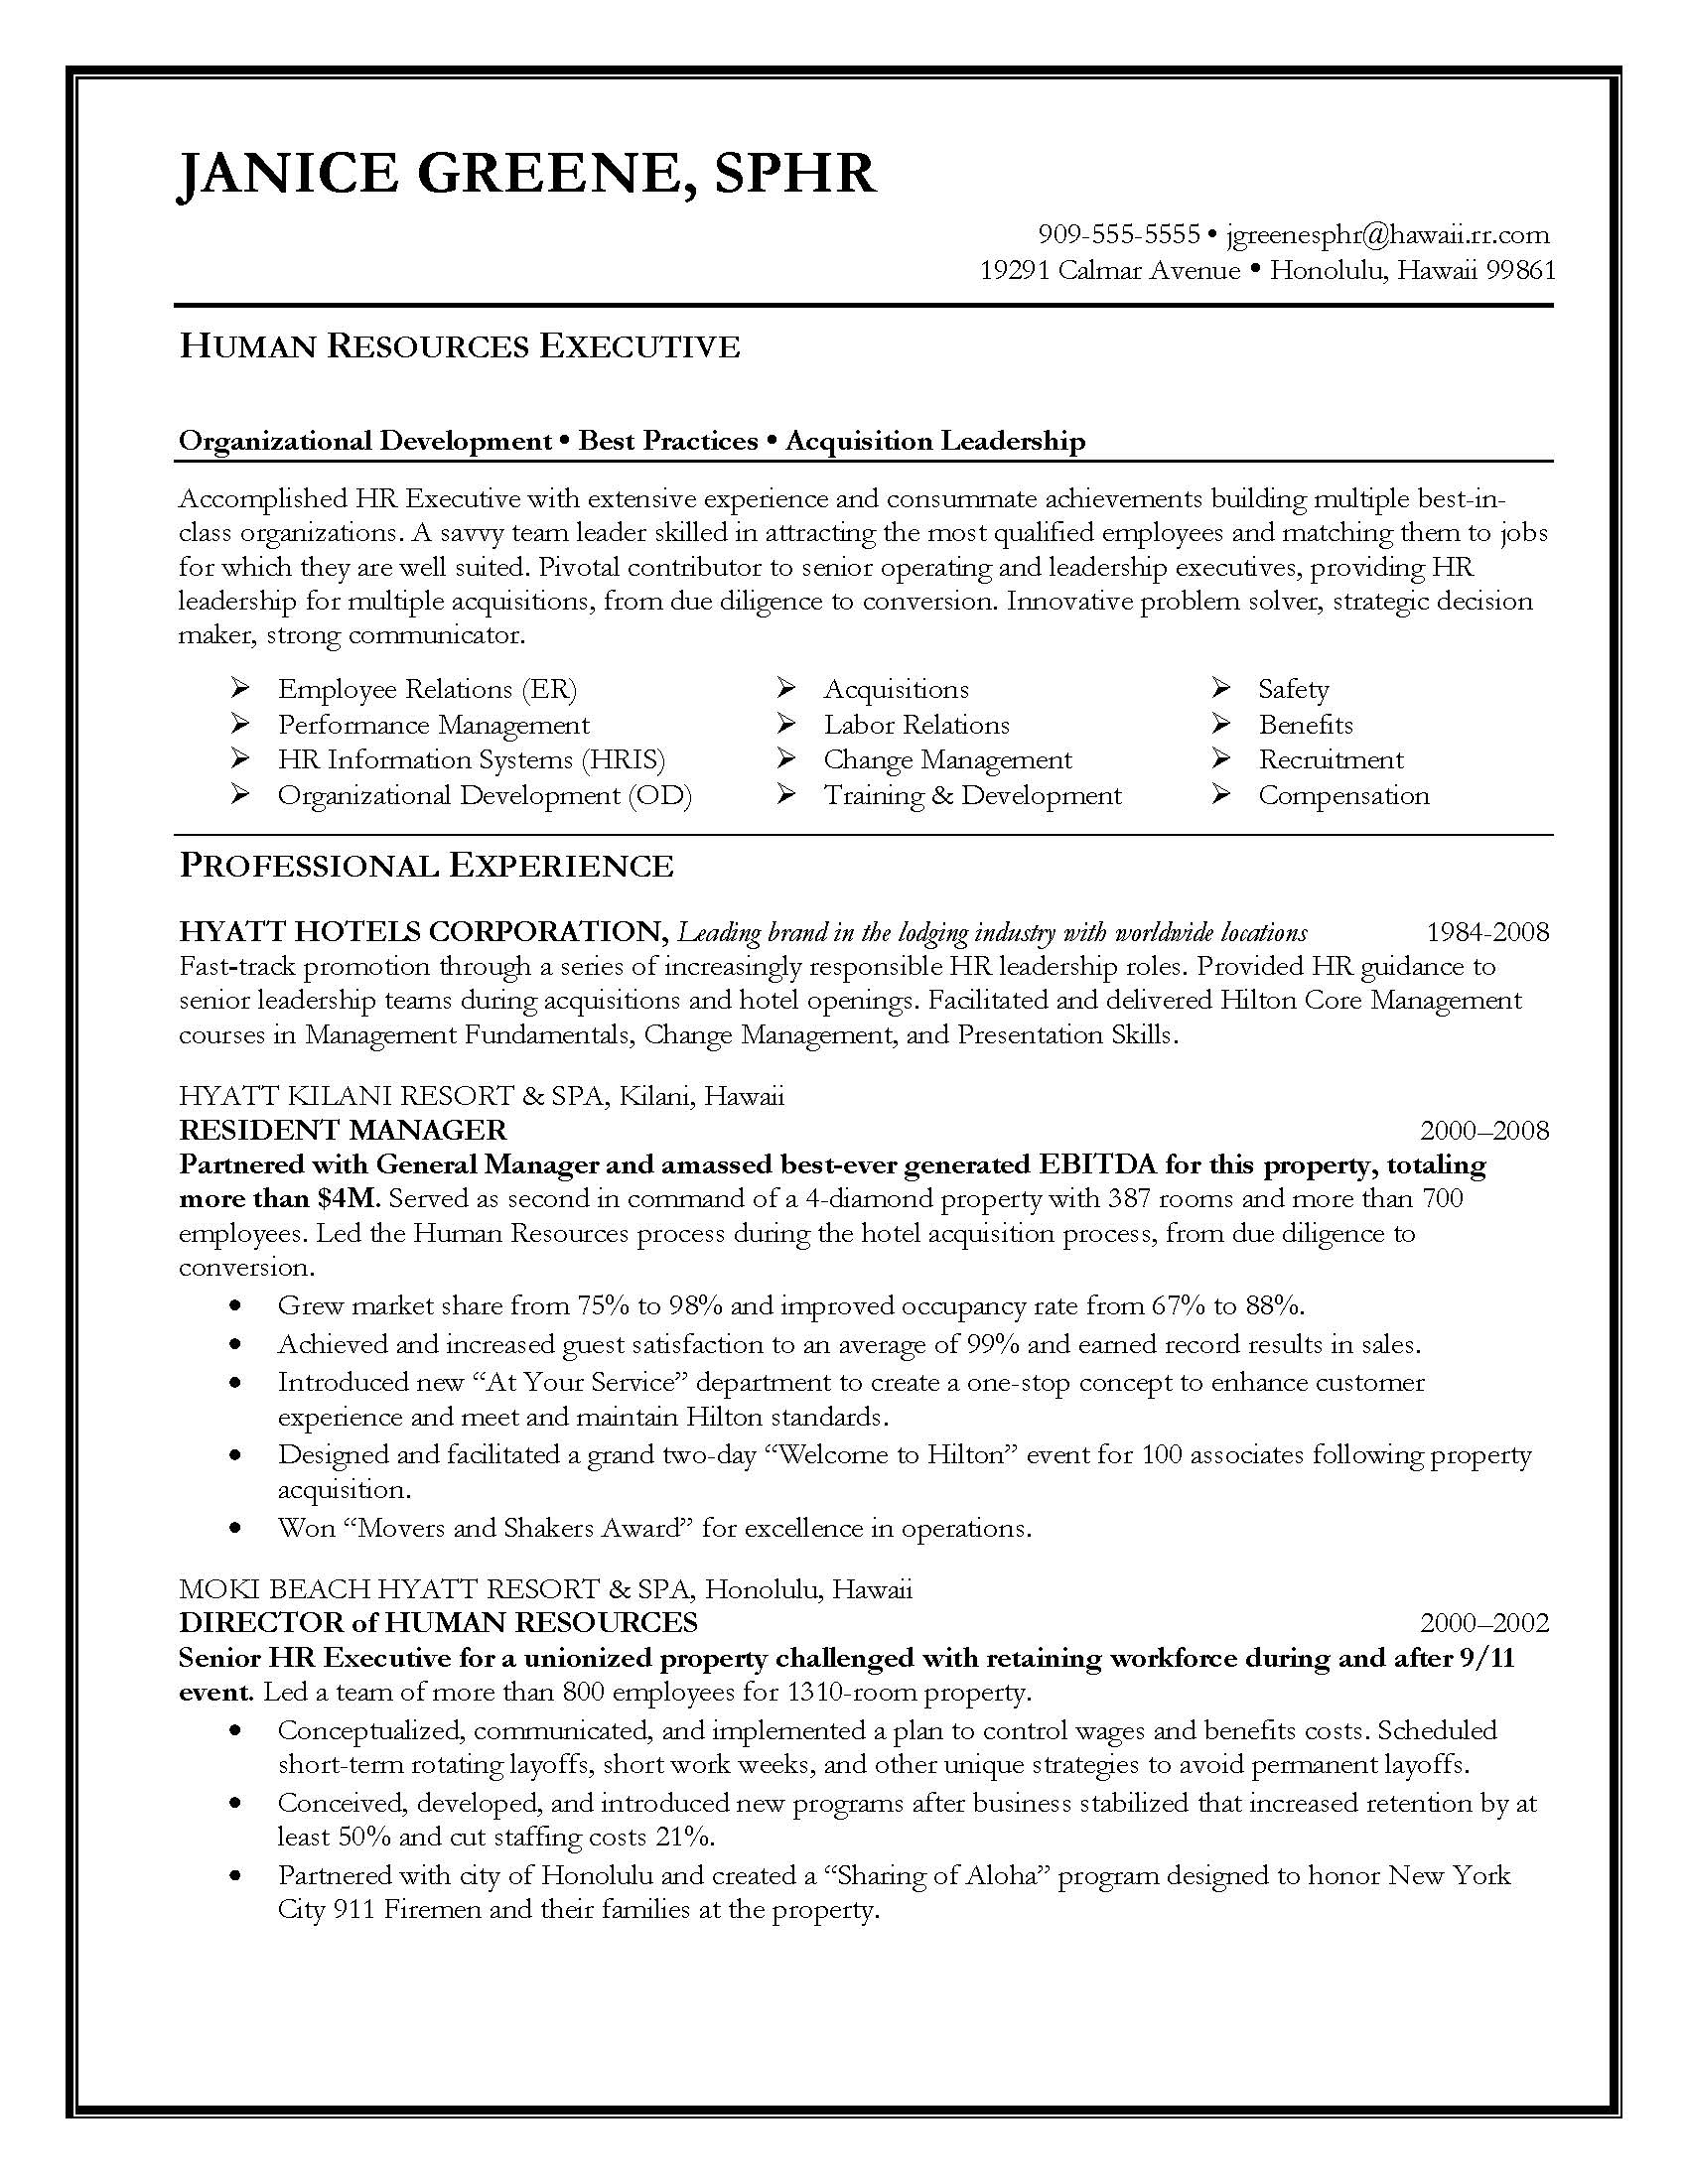 human resources executive resume sample provided by elite resume writing services - Executive Resume Writing Services